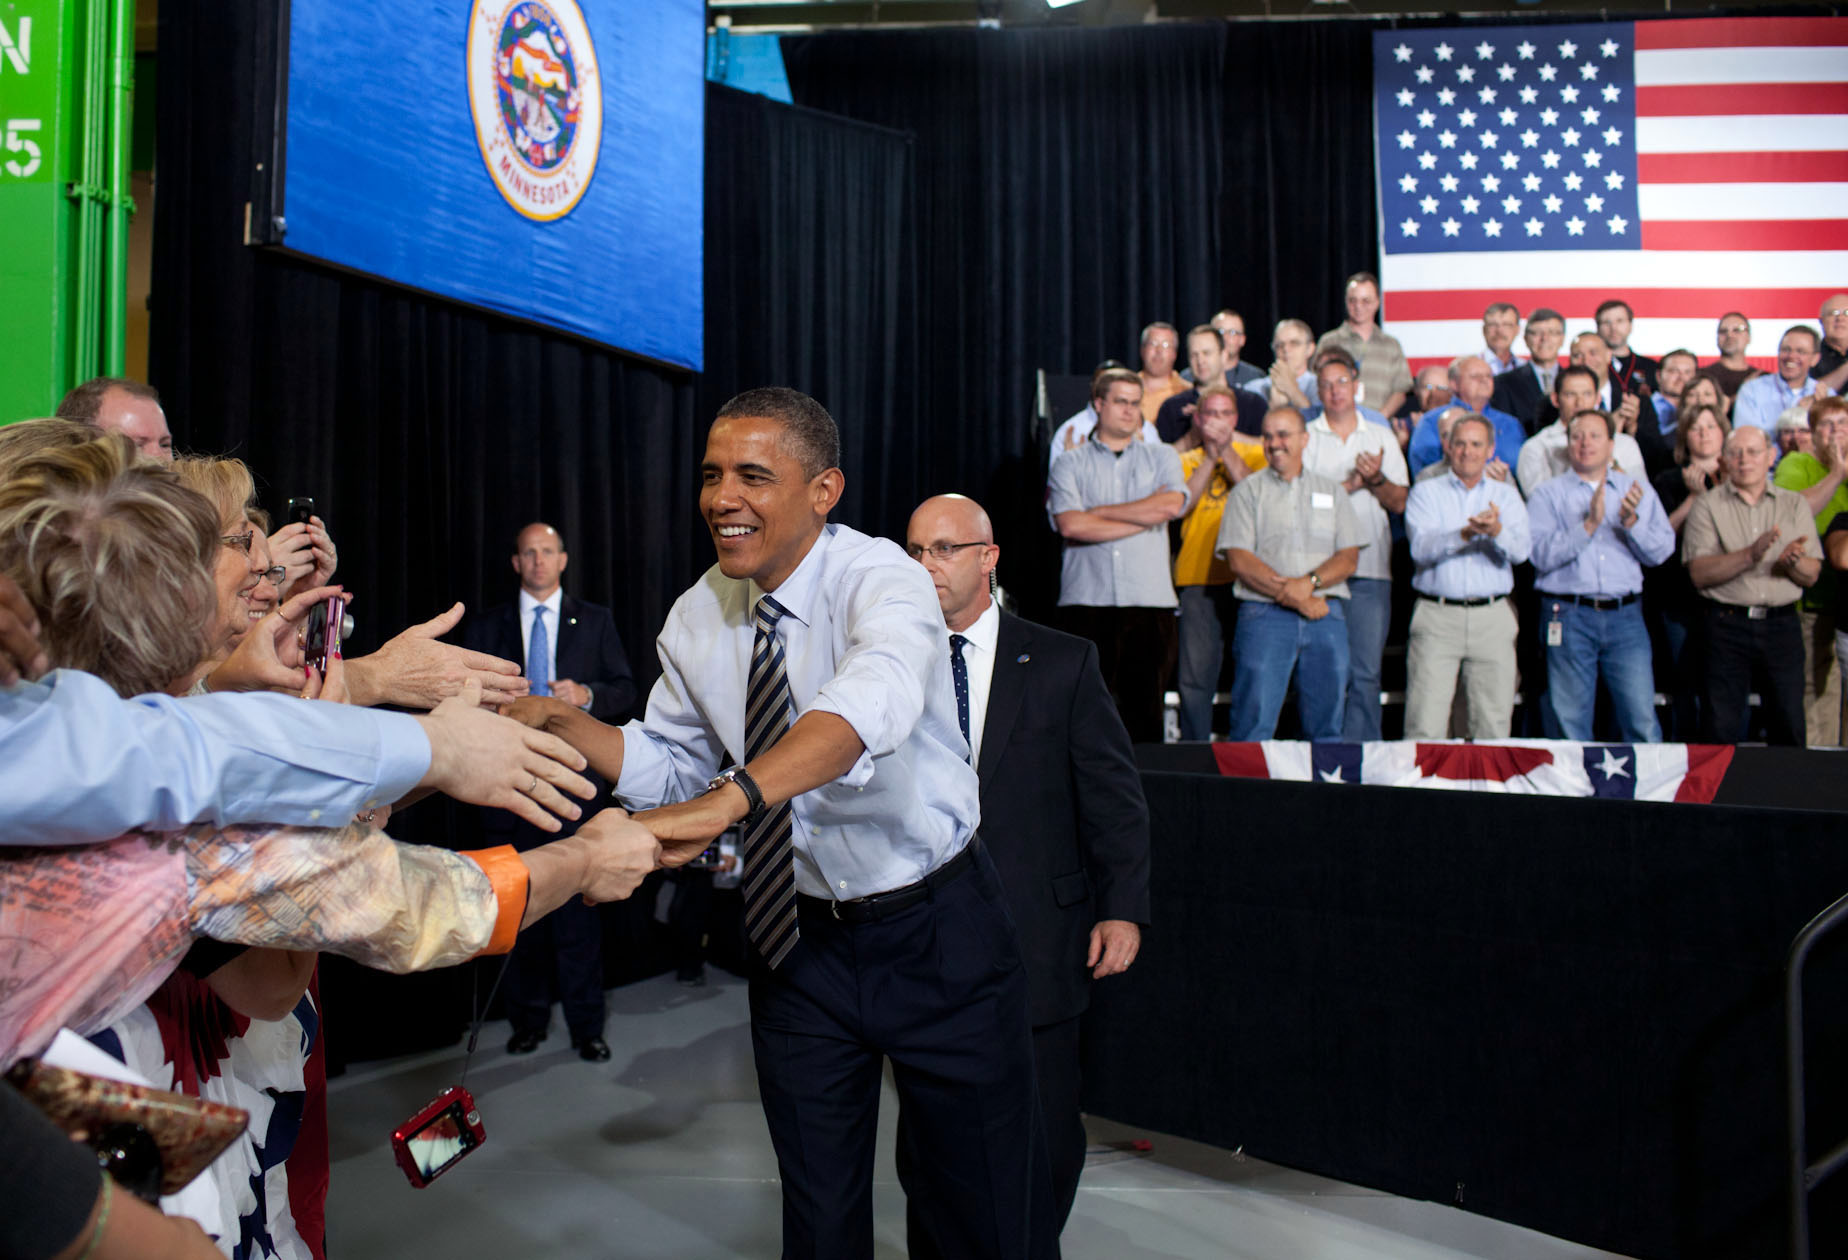 President Barack Obama greets people in the crowd at the Honeywell Golden Valley Facility (June 1, 2012)